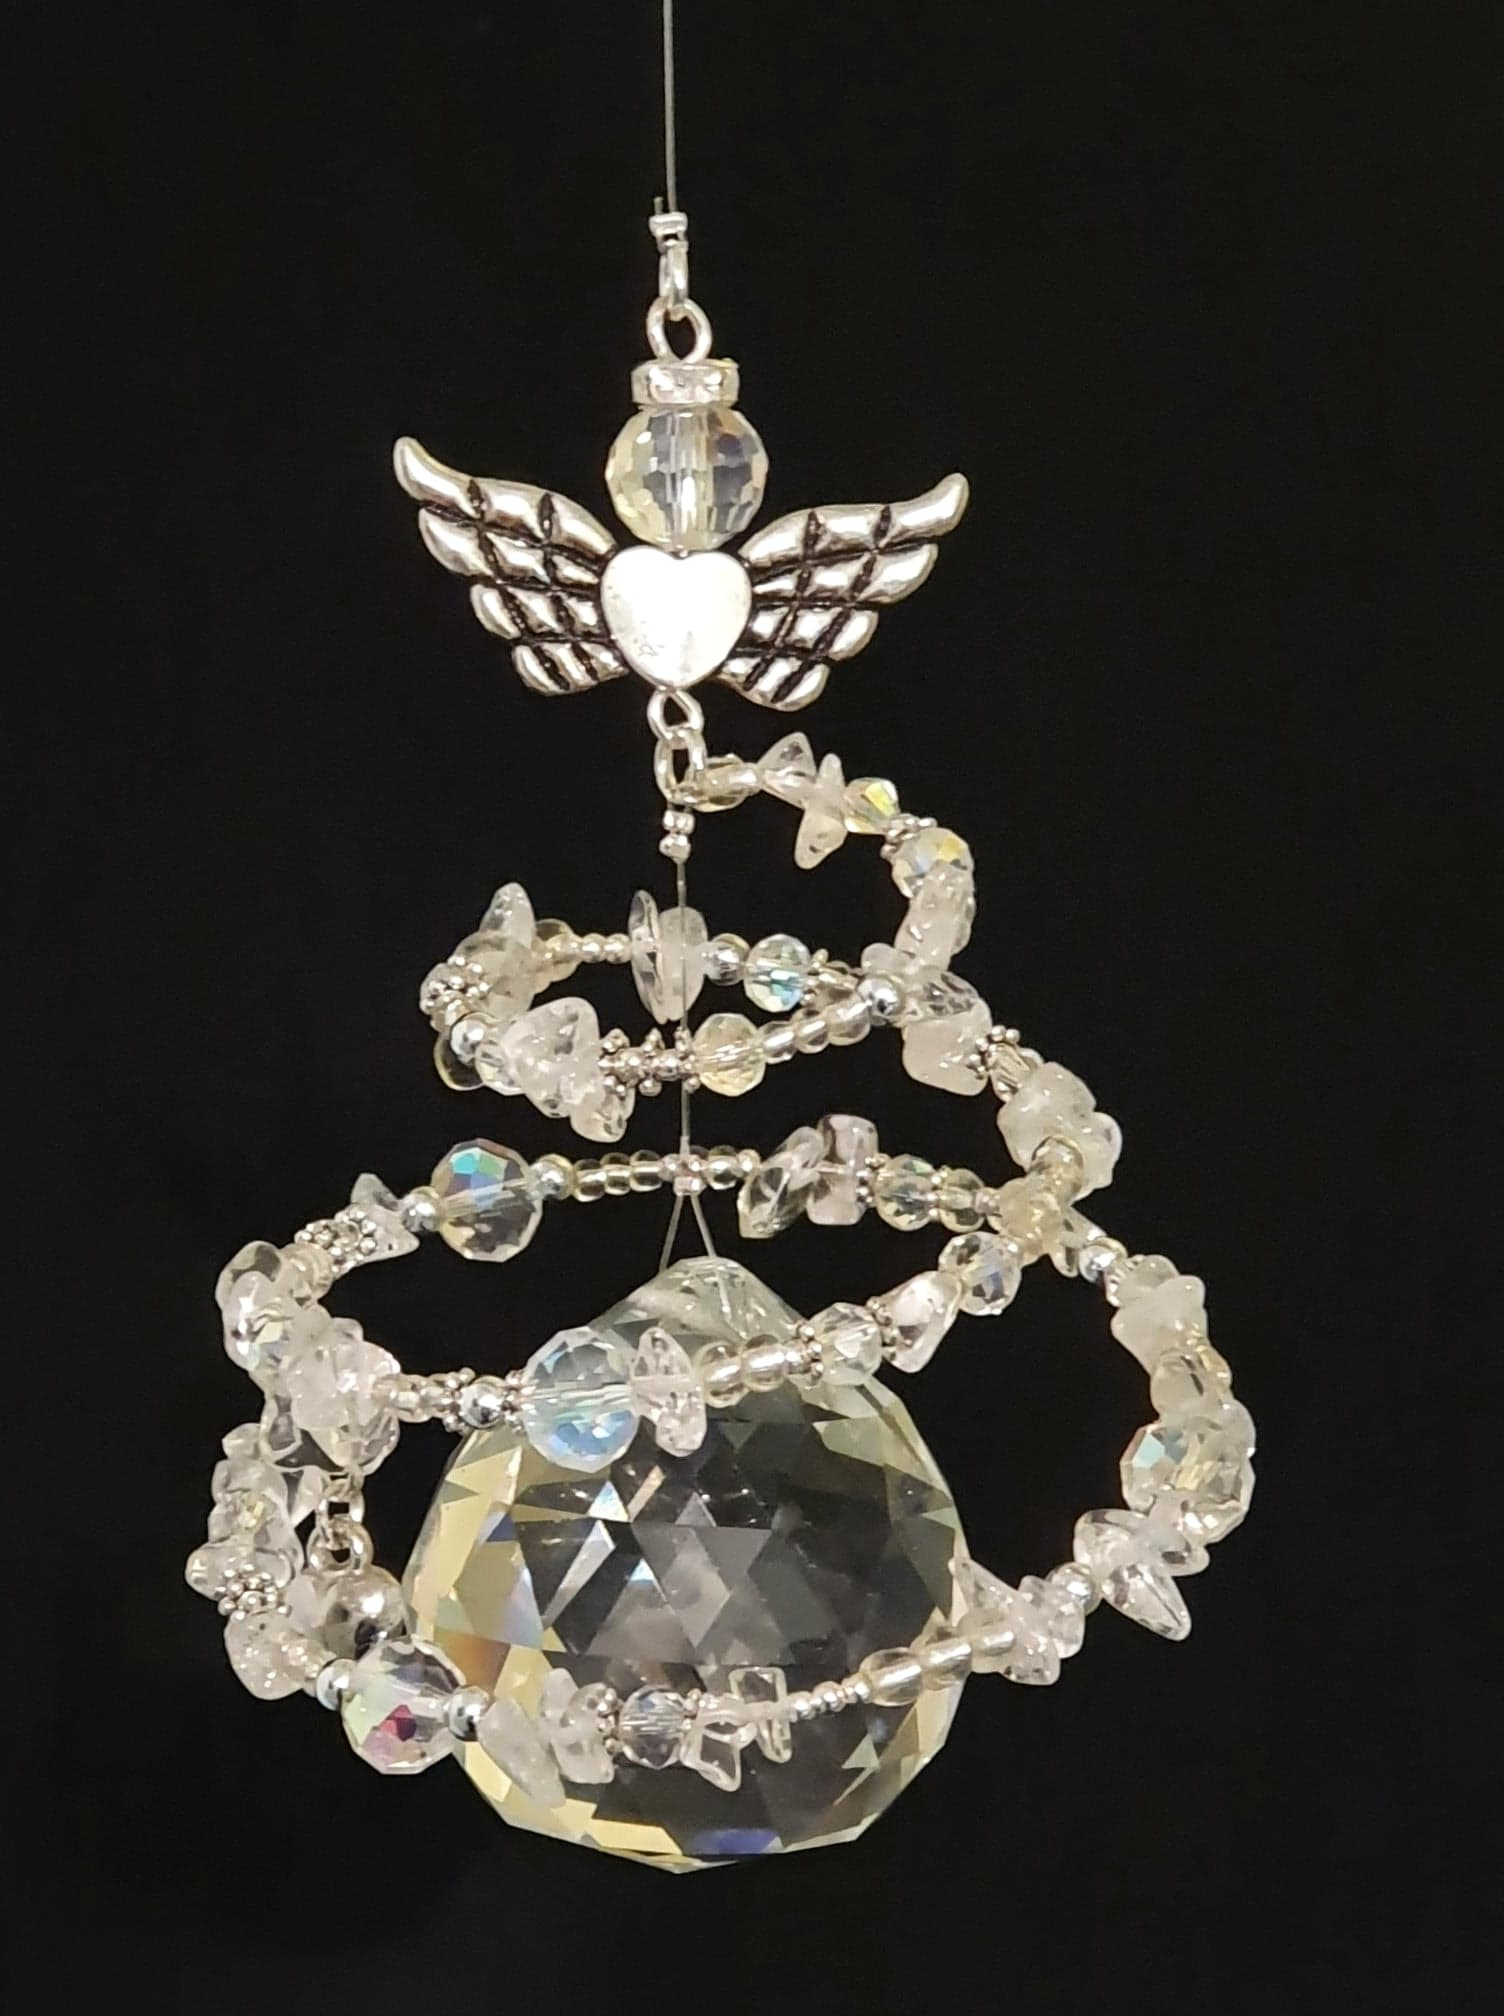 Clear Quartz Spiral Angel, single drop suncatcher with Heart charm